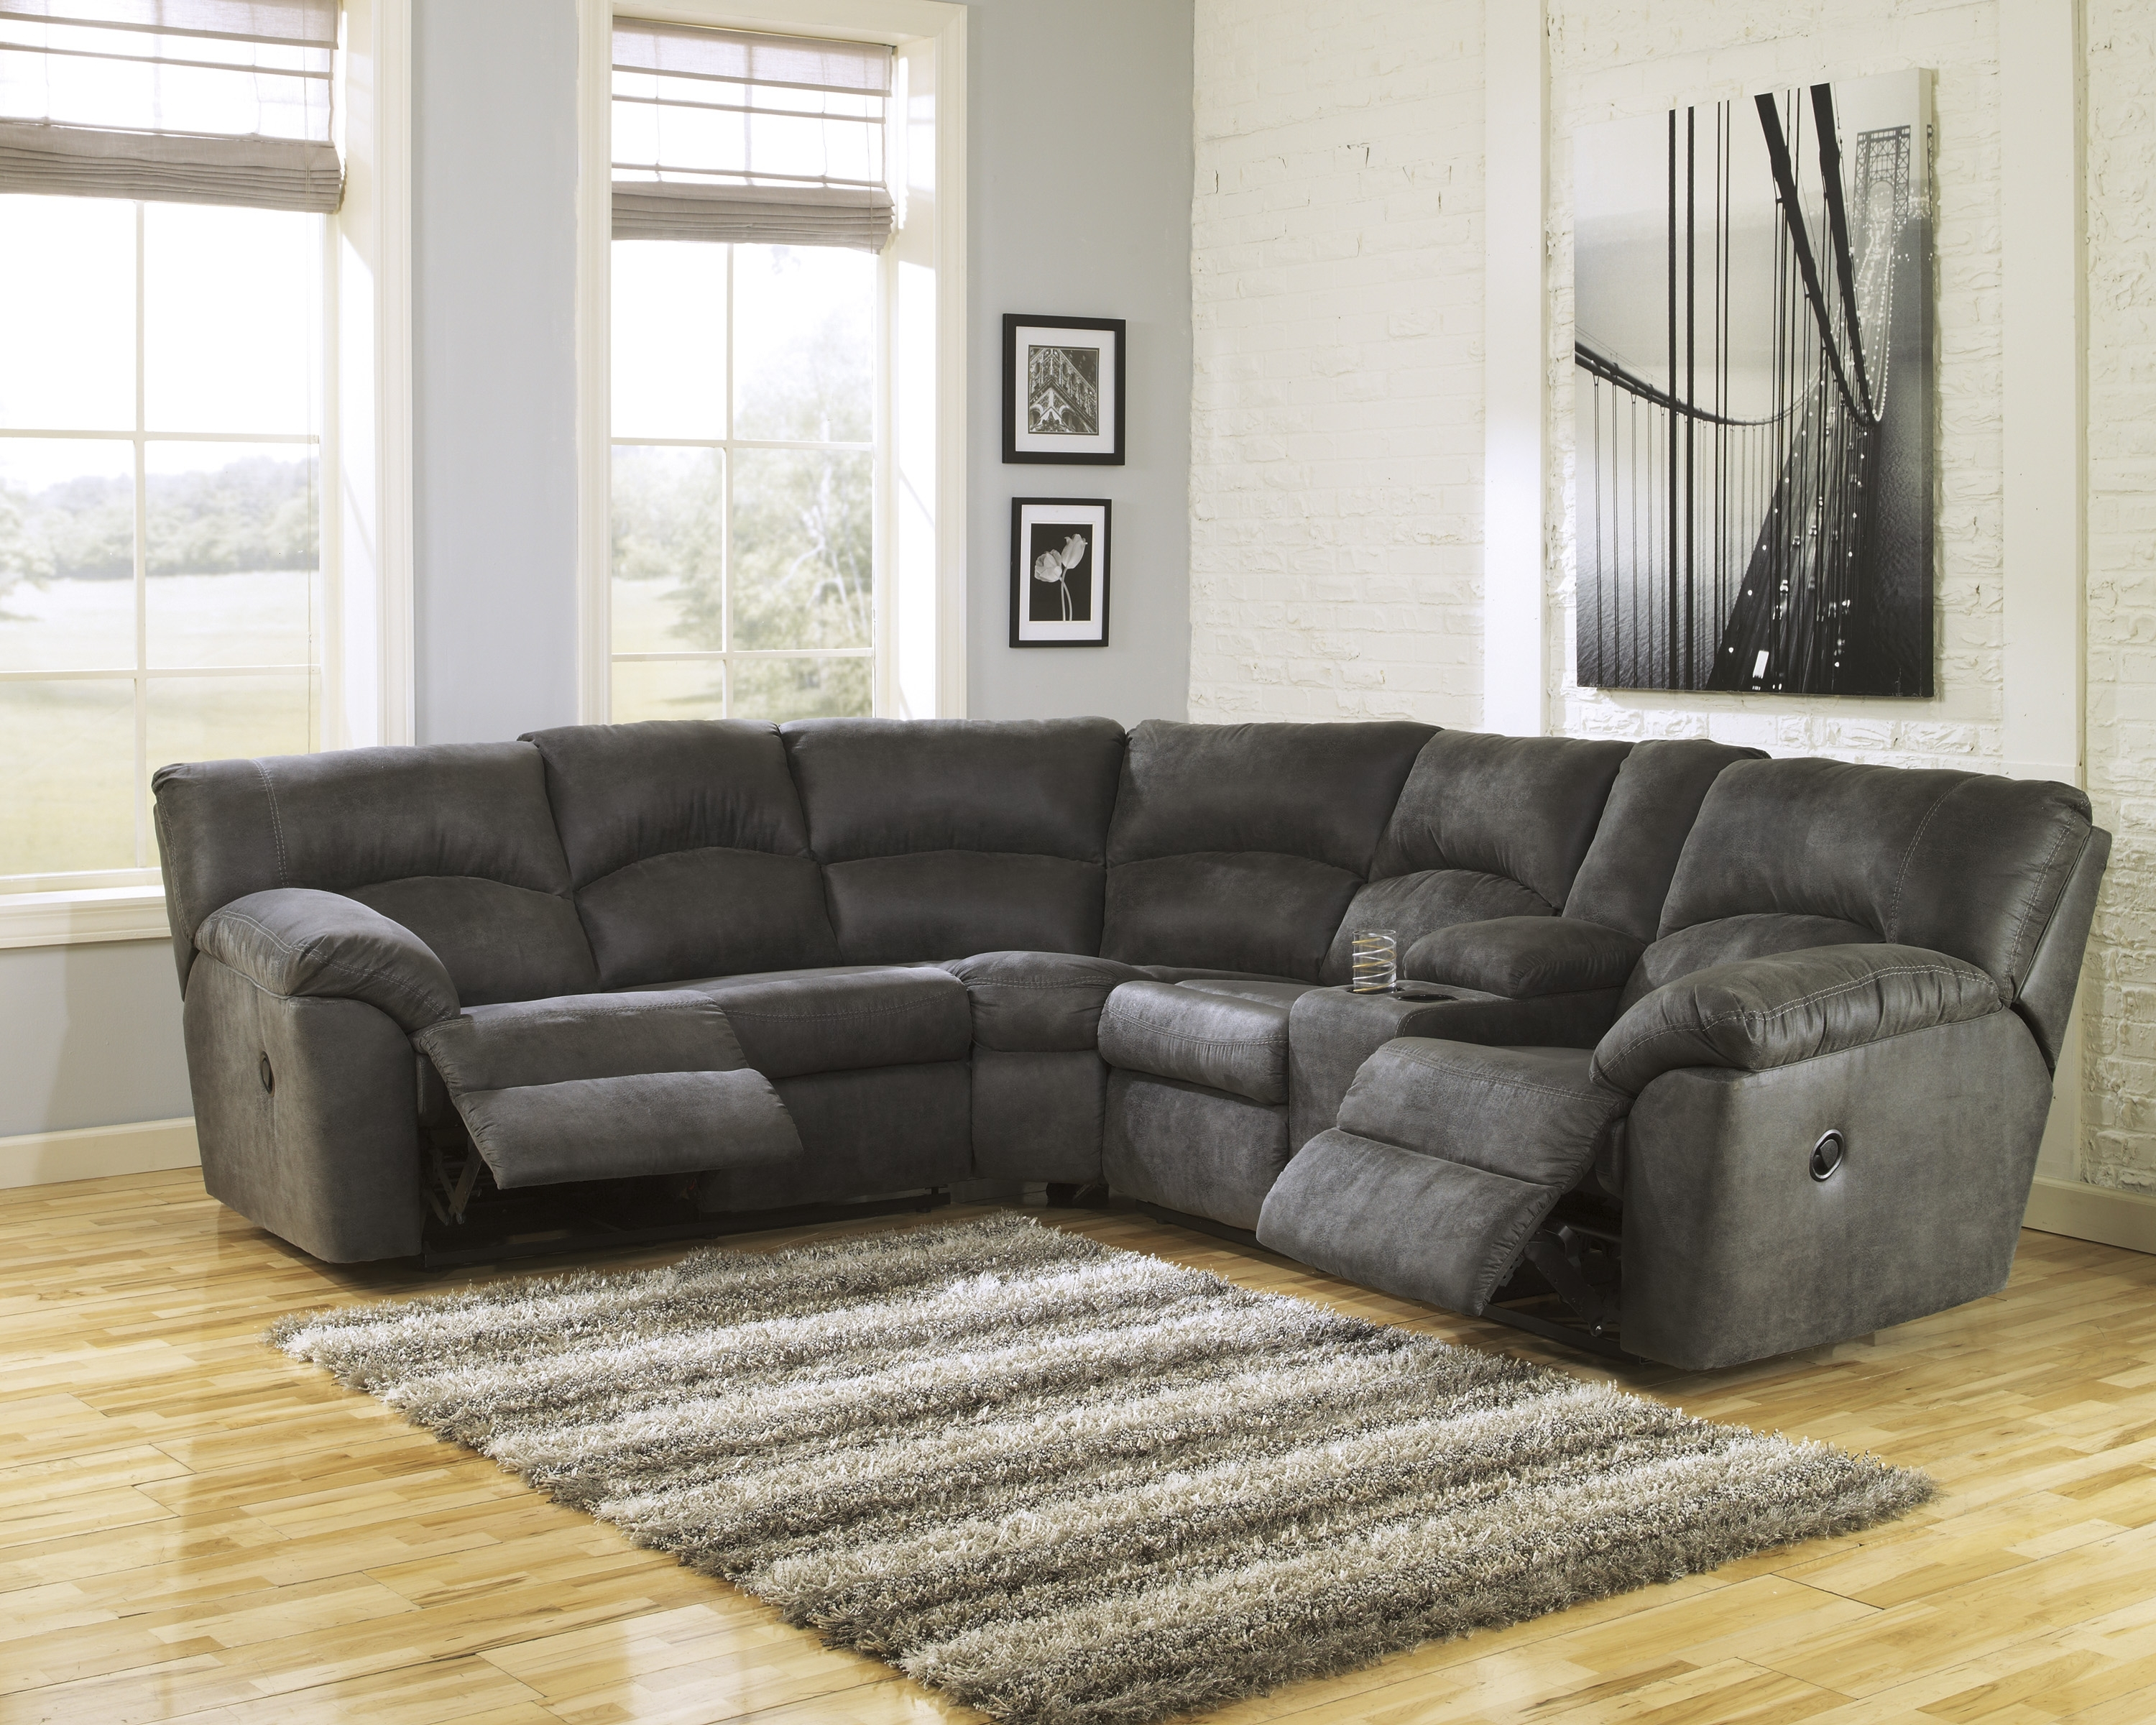 Sectionals Living Room | Furniture | Big Sandy Superstores Inside Denali Charcoal Grey 6 Piece Reclining Sectionals With 2 Power Headrests (Image 23 of 25)